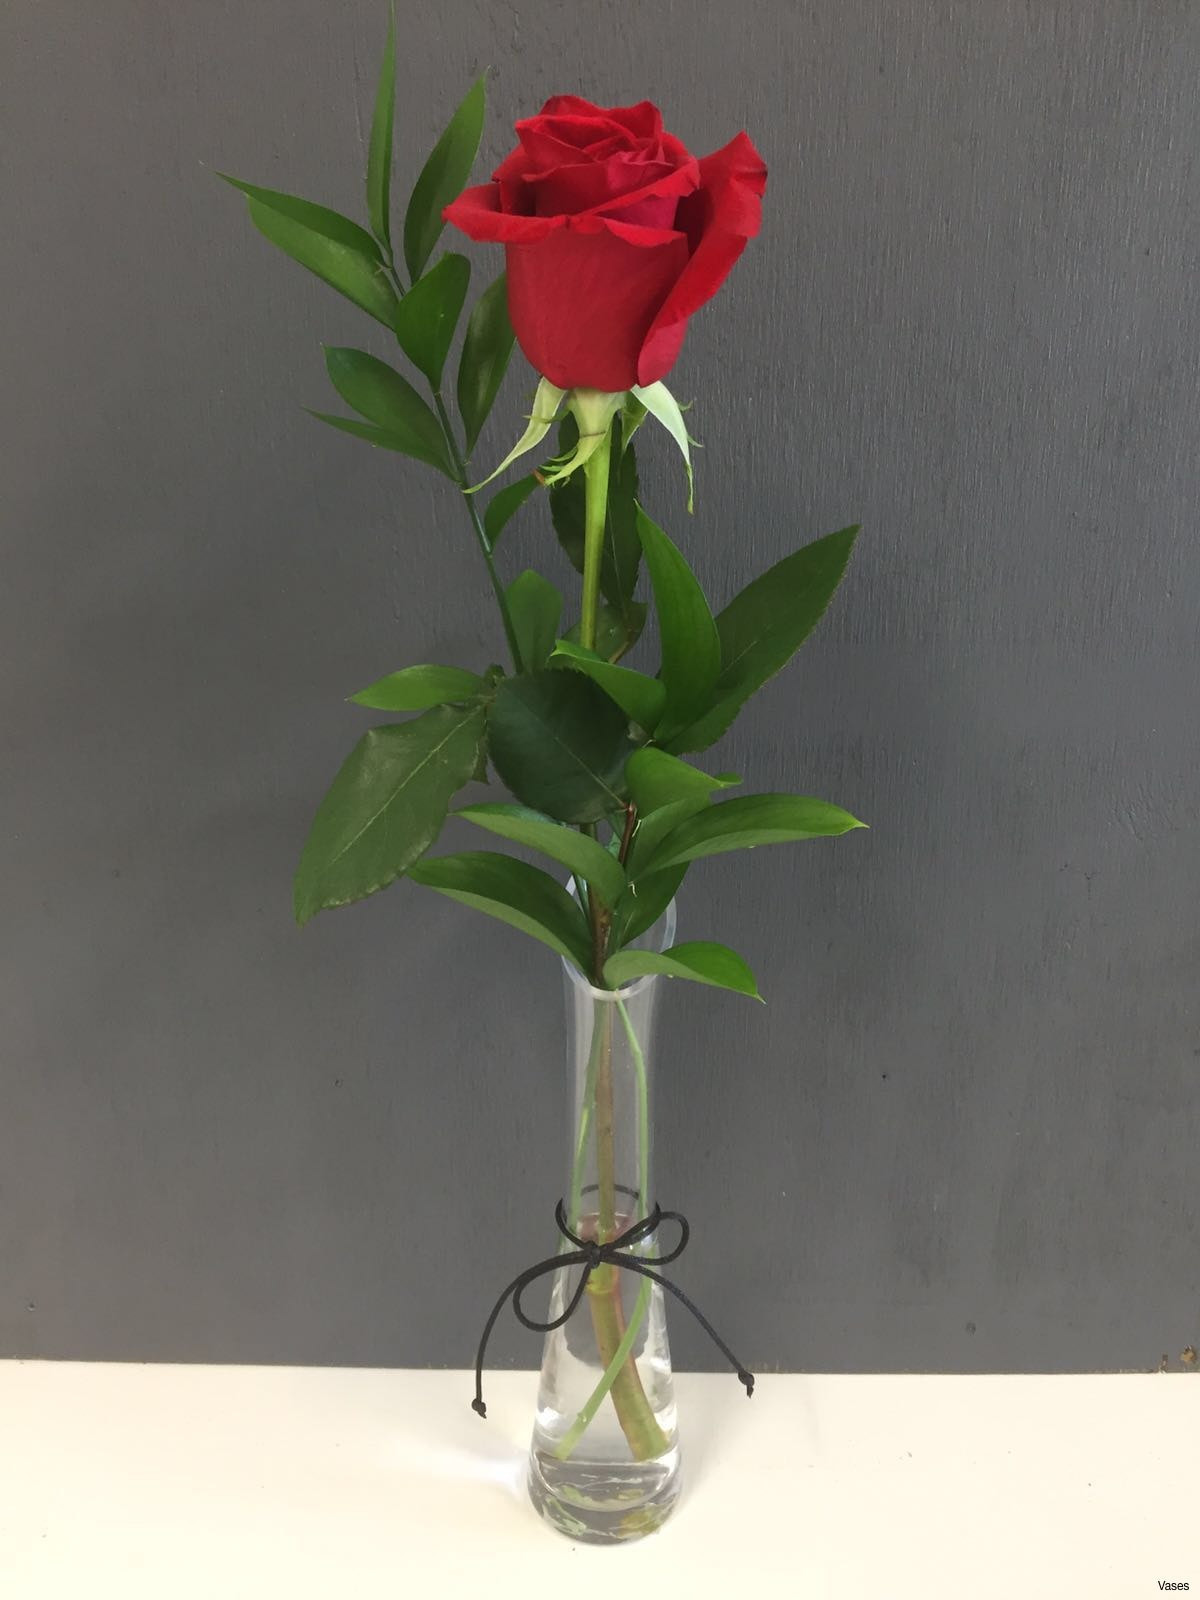 Rose Vase Of Single Flower Vase Images Roses Red In A Vase Singleh Vases Rose for Single Flower Vase Images Roses Red In A Vase Singleh Vases Rose Single I 0d Invasive